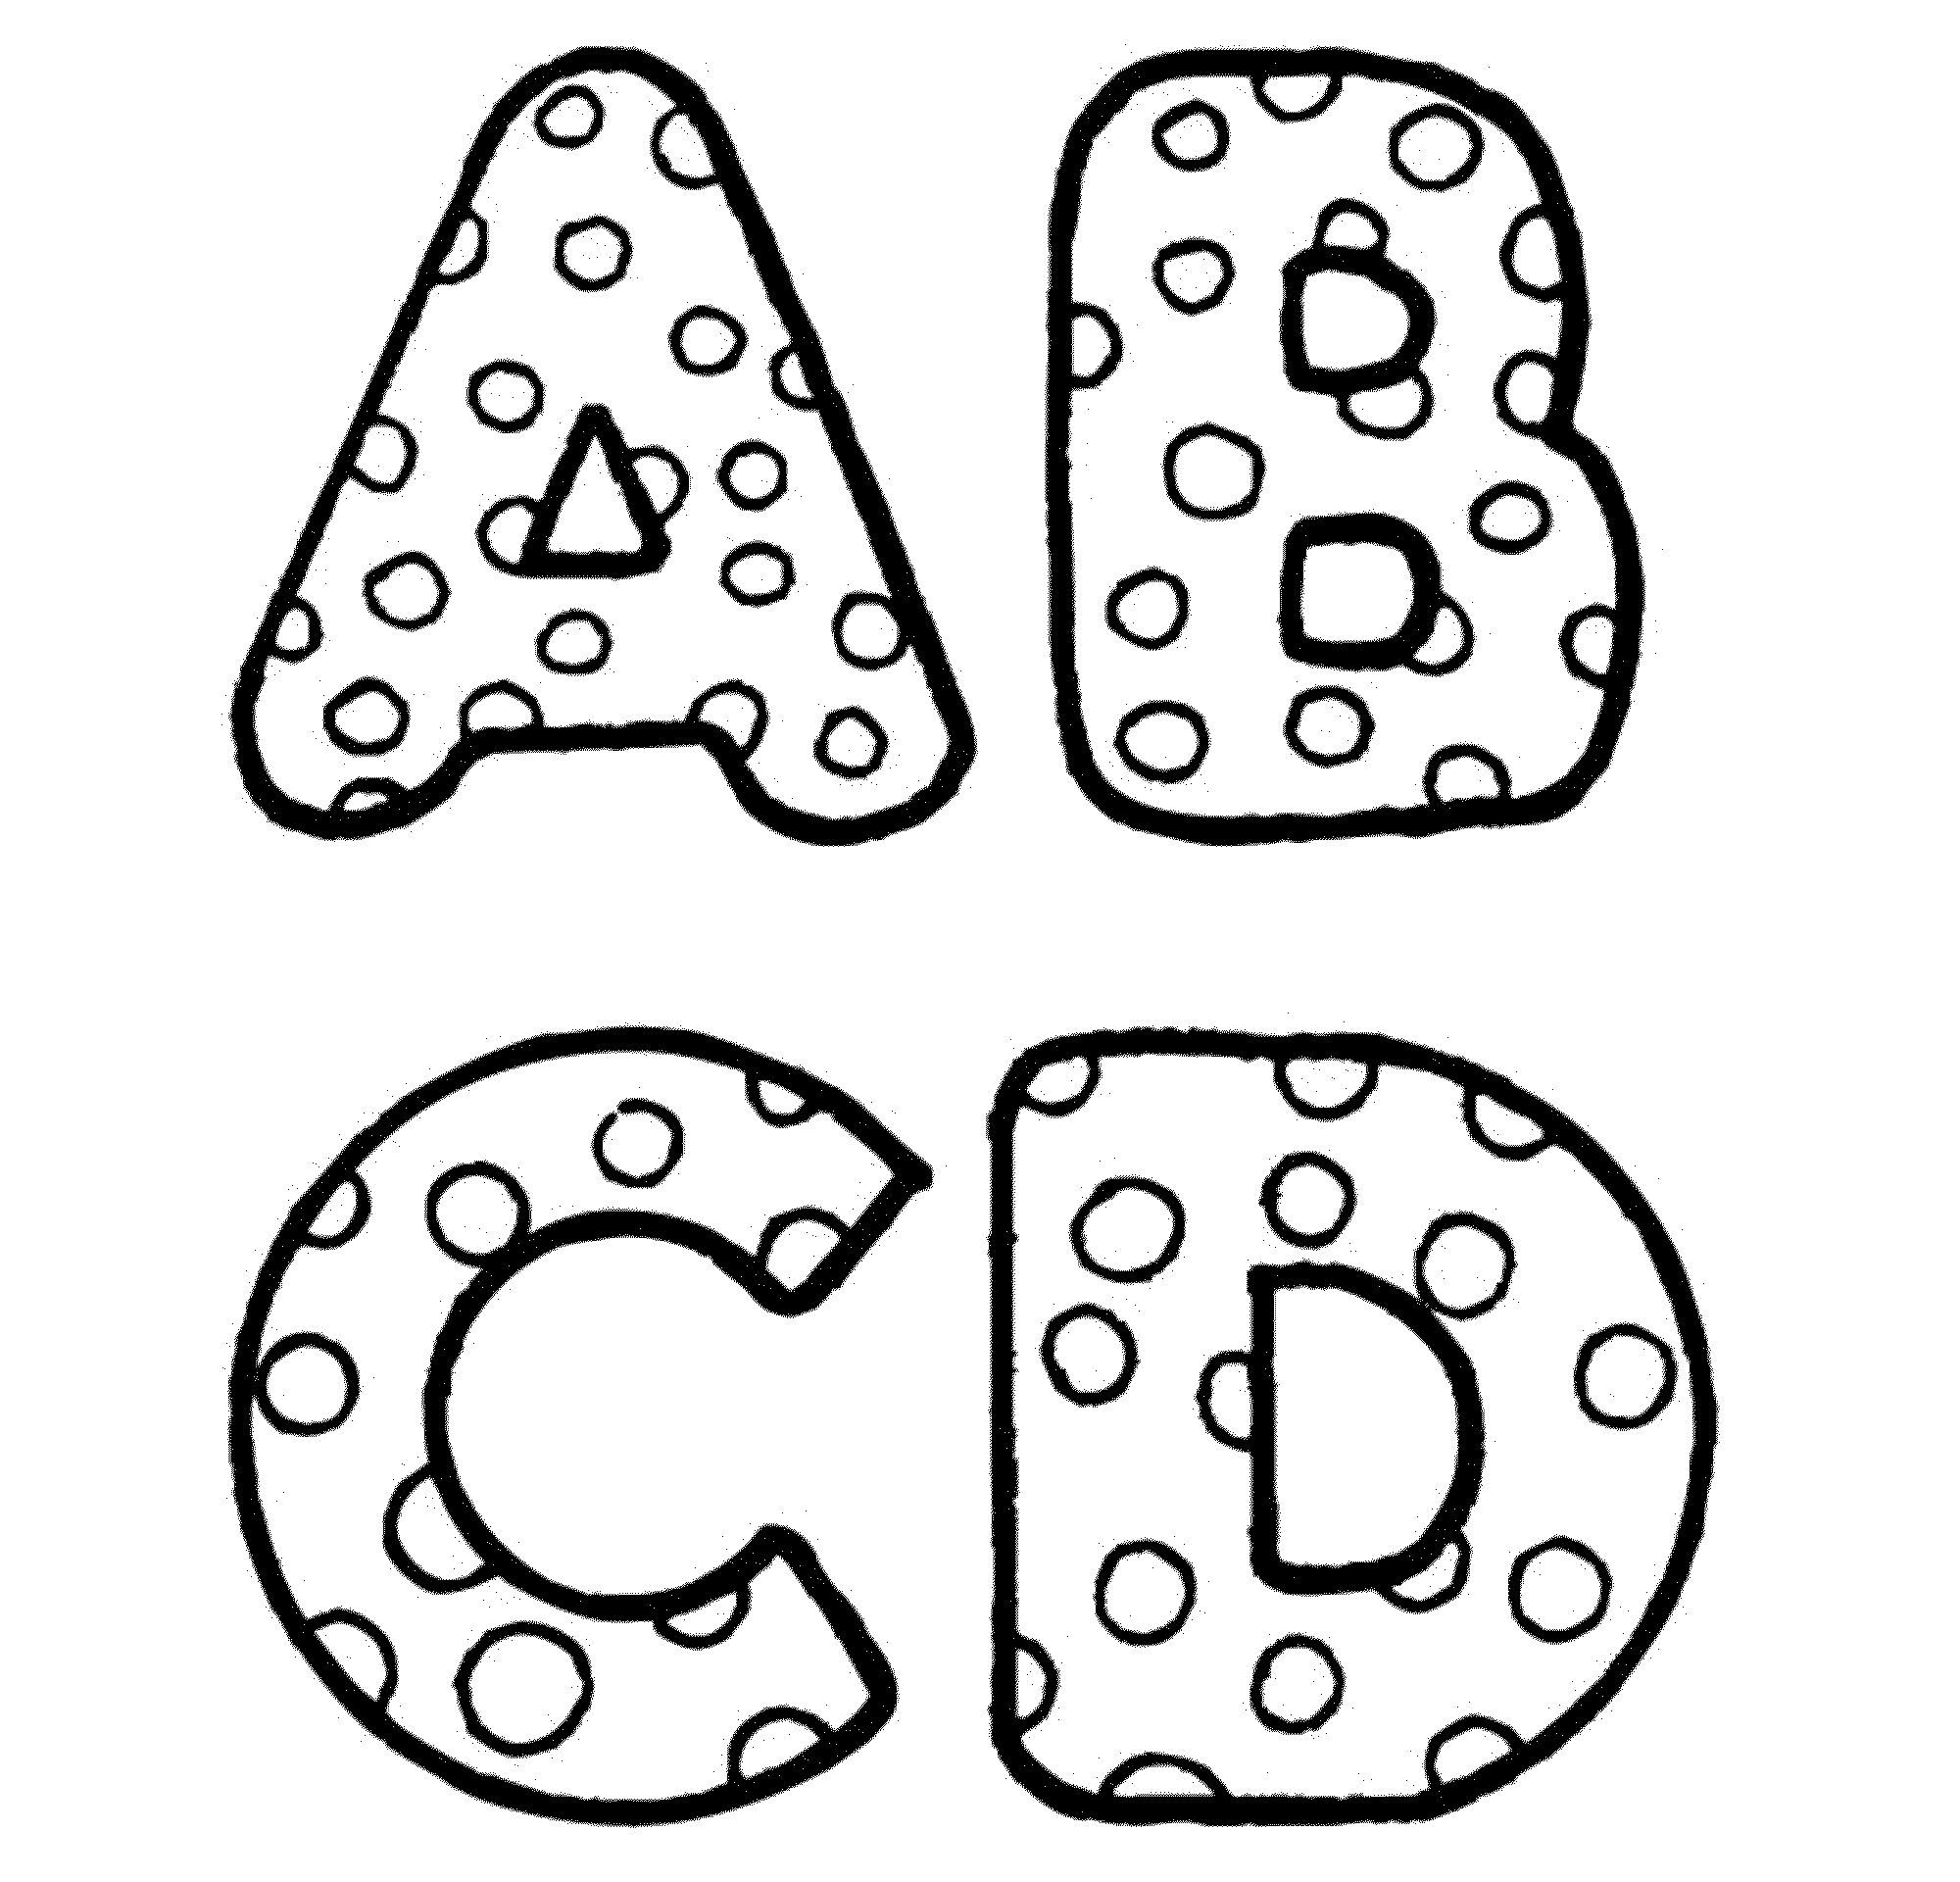 2000x1920 Abc Coloring Pages Free Coloring Pages